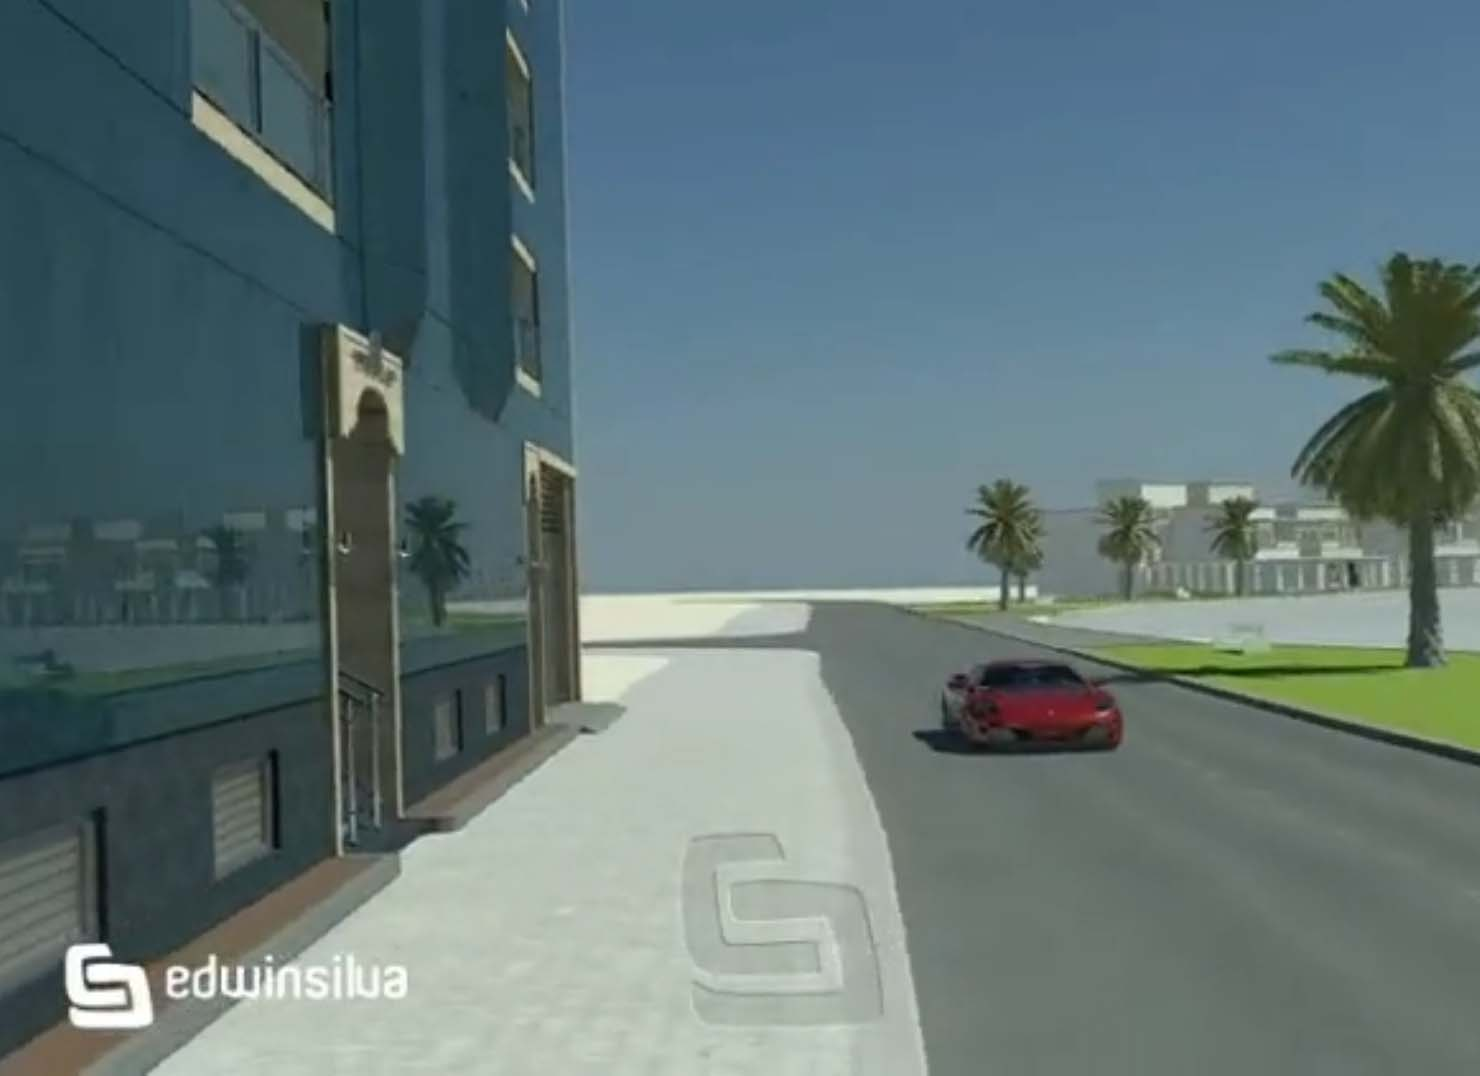 Animated Building in Amwaj Islands by Edwin